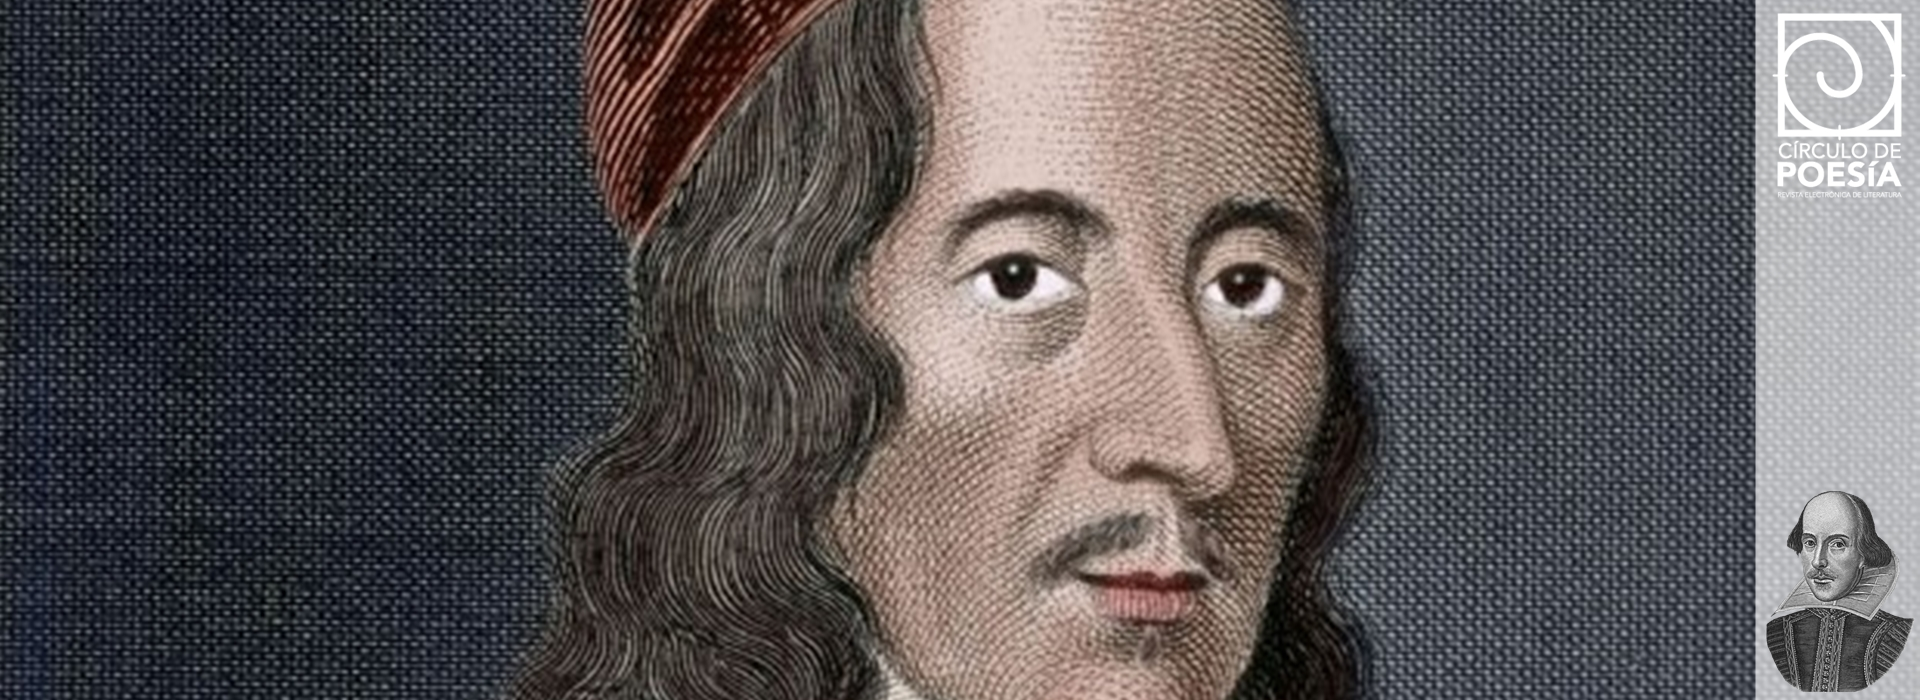 collar george herbert biography and analysis The collar by george herbert i struck the board, and cried, no more i will  abroad what shall i ever sigh and pine my lines and life are free free as the  road.